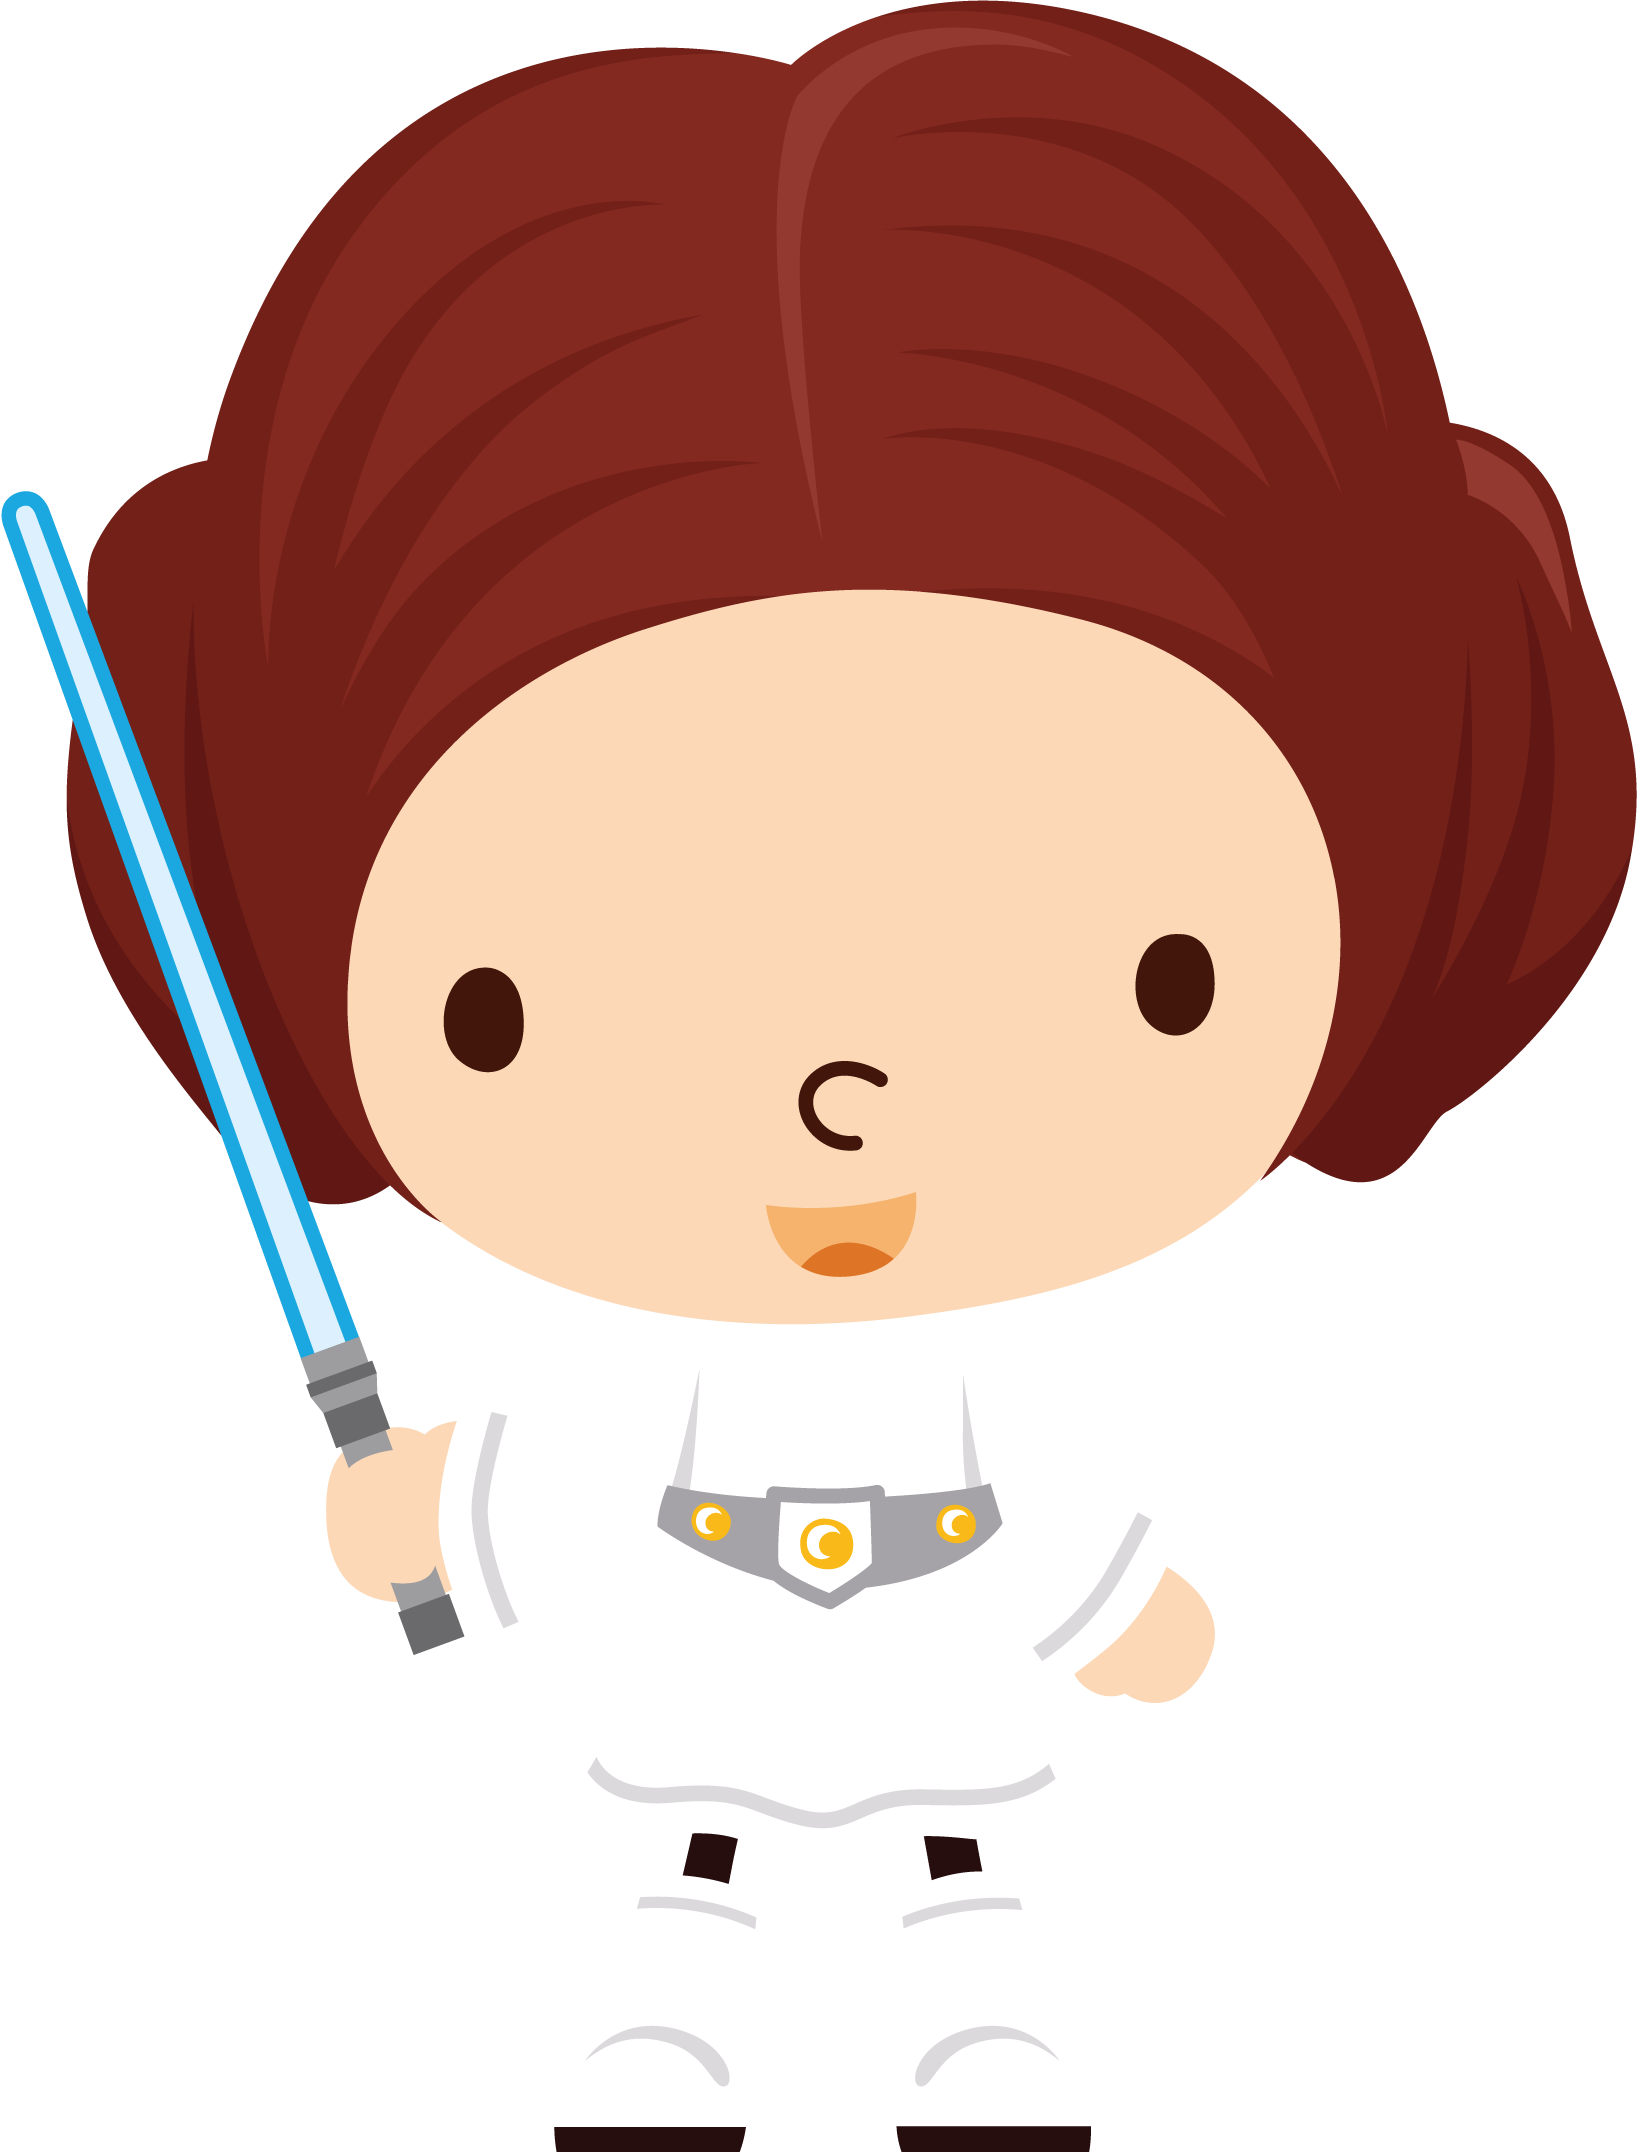 Star wars birthday clipart clipart freeuse stock orig14.deviantart.net 9790 f 2014 267 0 3 leia_by_chrispix326 ... clipart freeuse stock